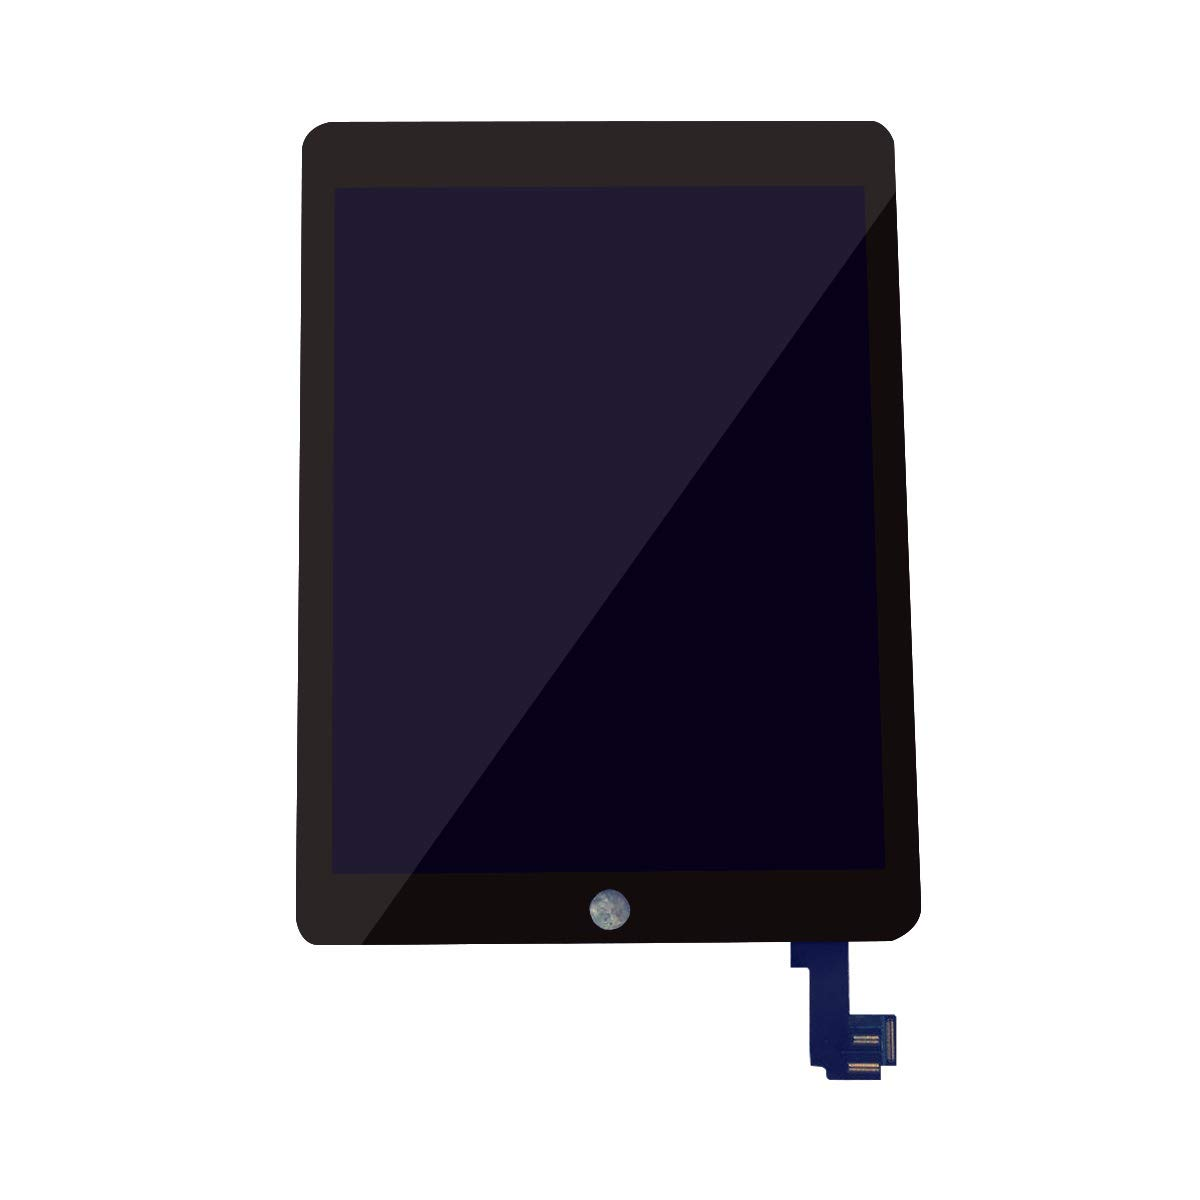 (Swifthorse) Replacement LCD Touch Screen Assembly Compatible with IPAD 6 Air 2 Model A1566 A1567 (Black) + Free Teardown Tool